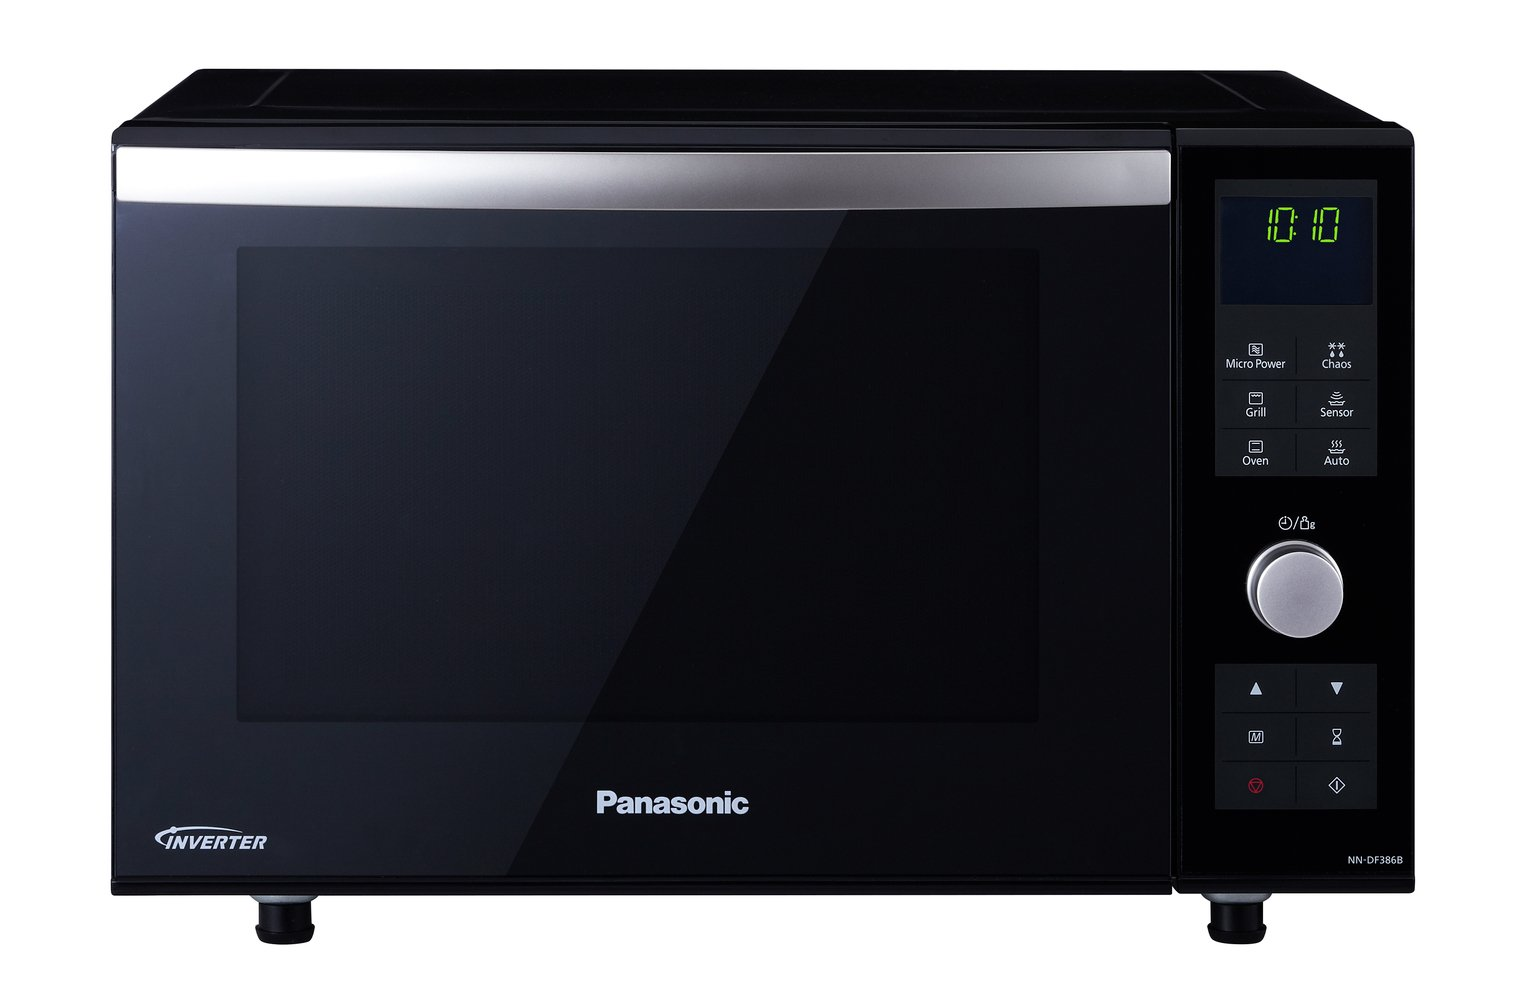 Panasonic NN-DF386BBPQ 3-in-1 Combination Microwave Oven, 1000 W, 23 Litre, Black Best Price and Cheapest